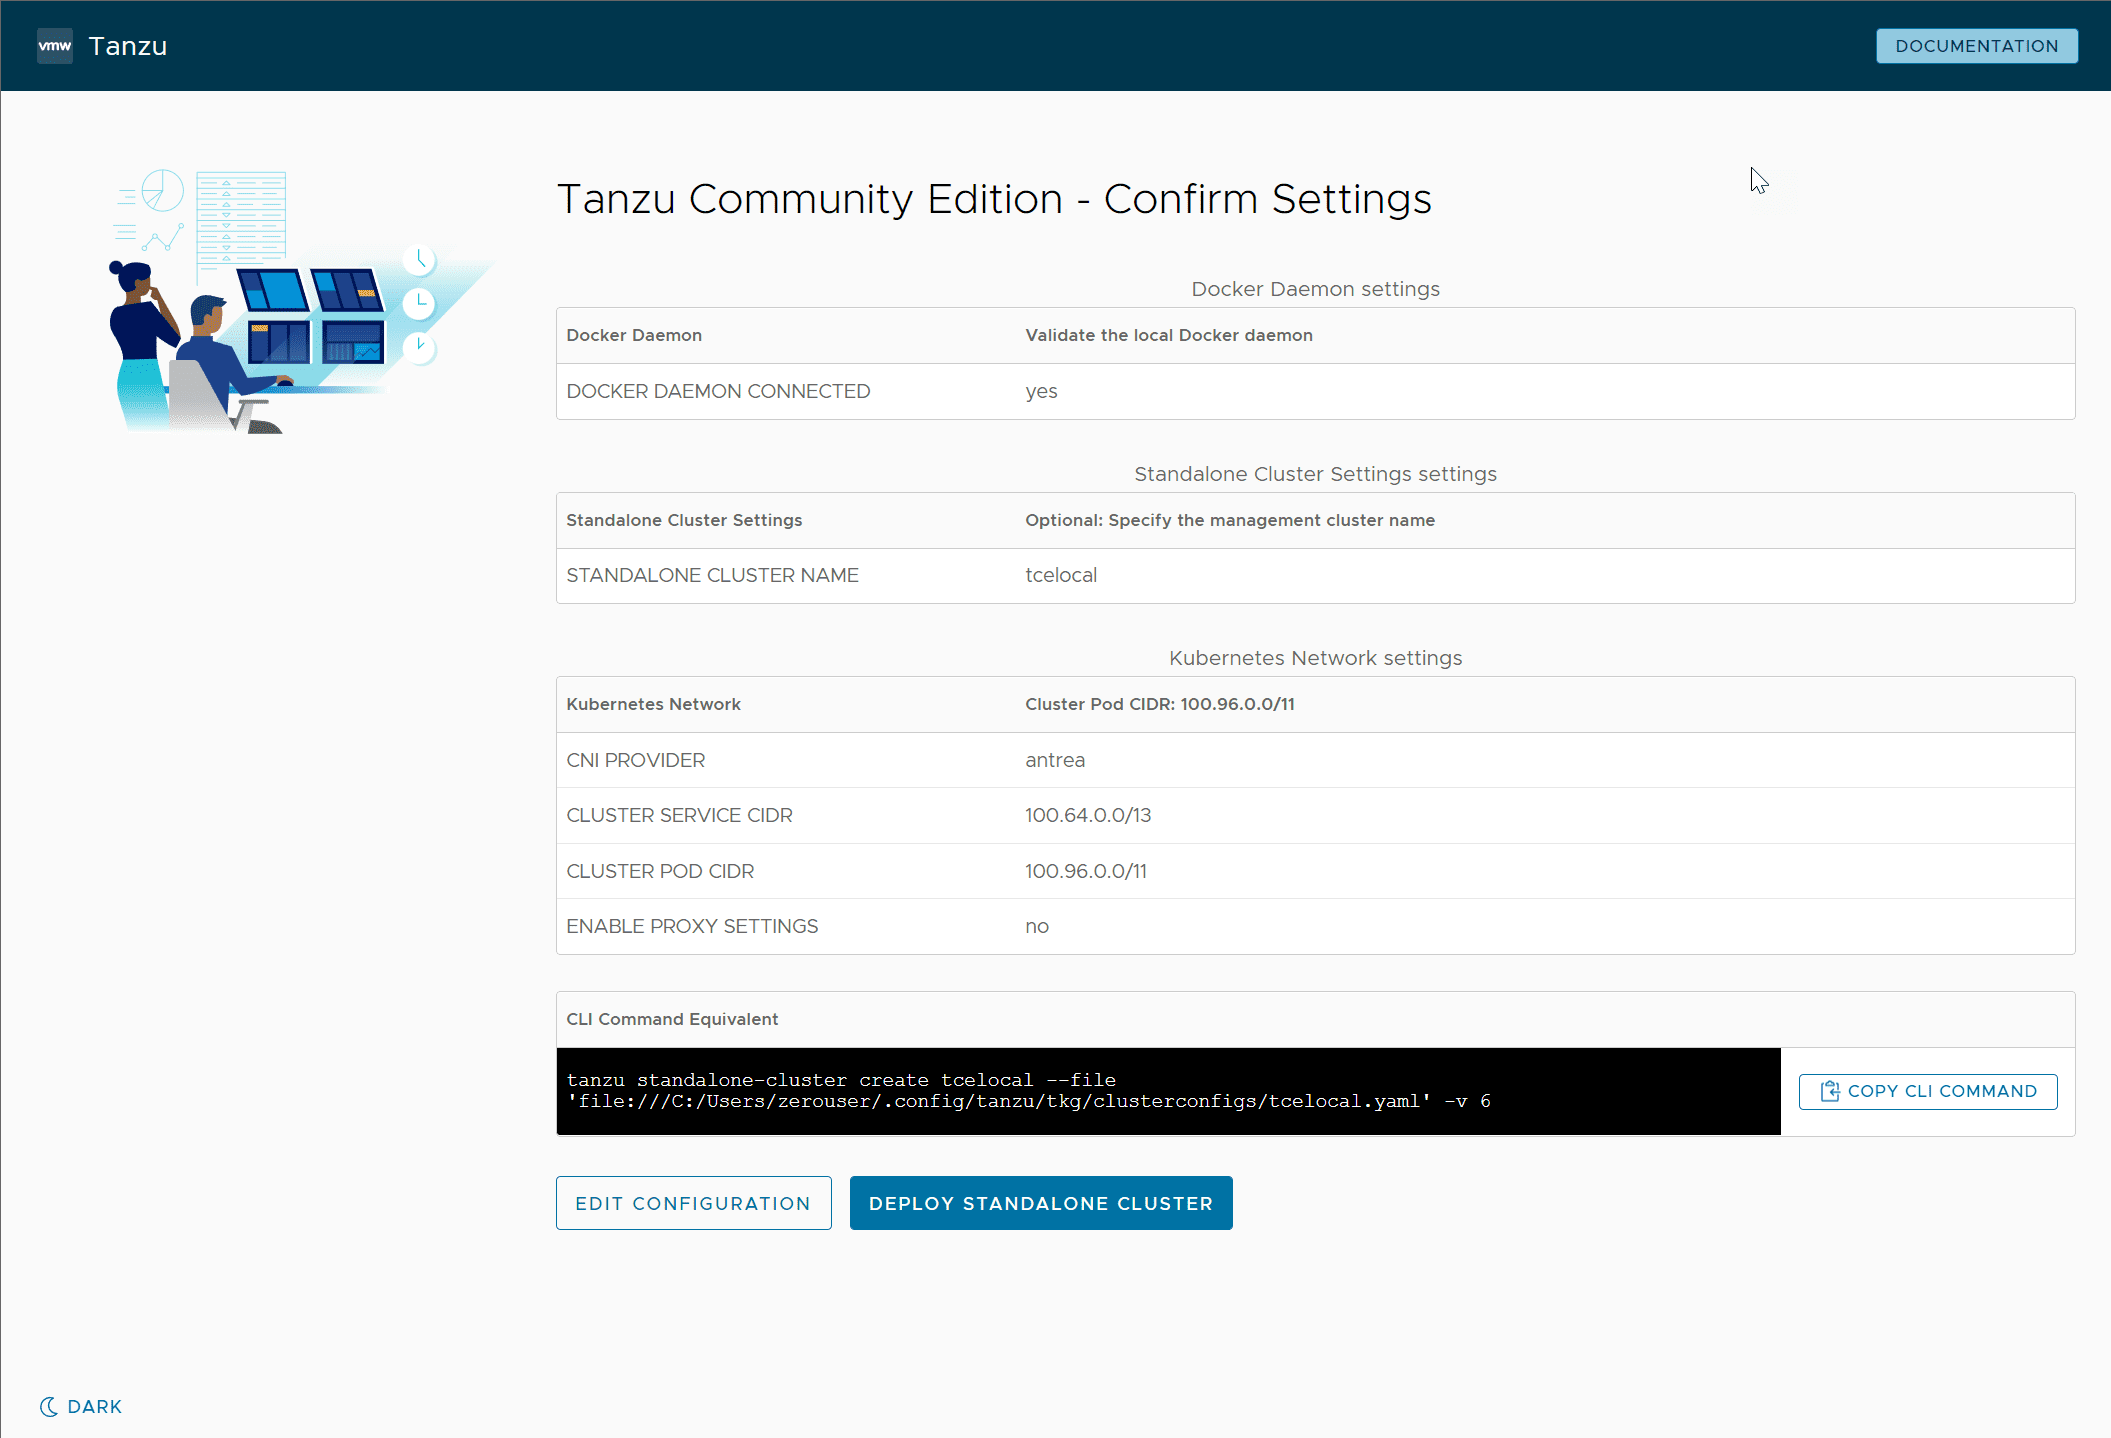 Confirm the Tanzu Community Edition standalone cluster configuration settings